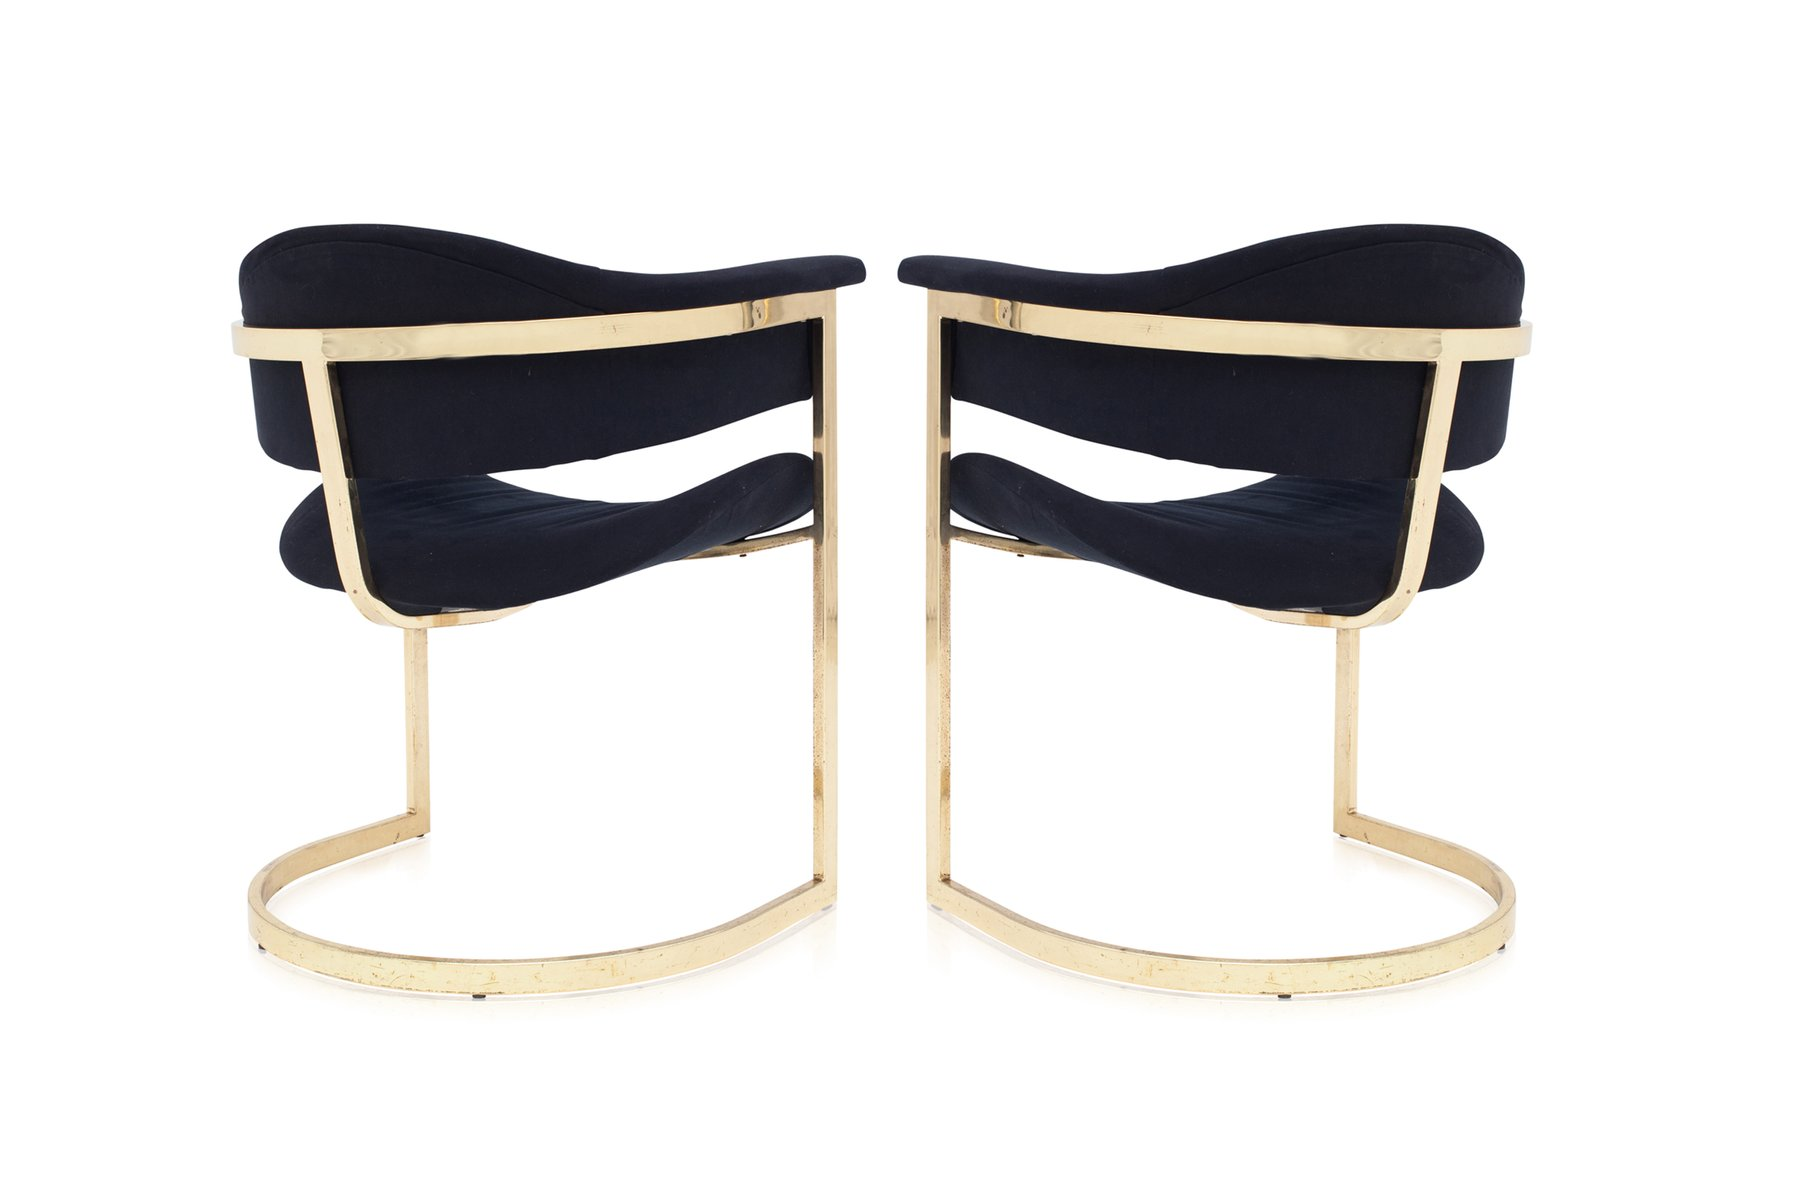 Vintage brass dining chairs from roche bobois set of 6 for sale at pamono - Roche bobois chaises ...